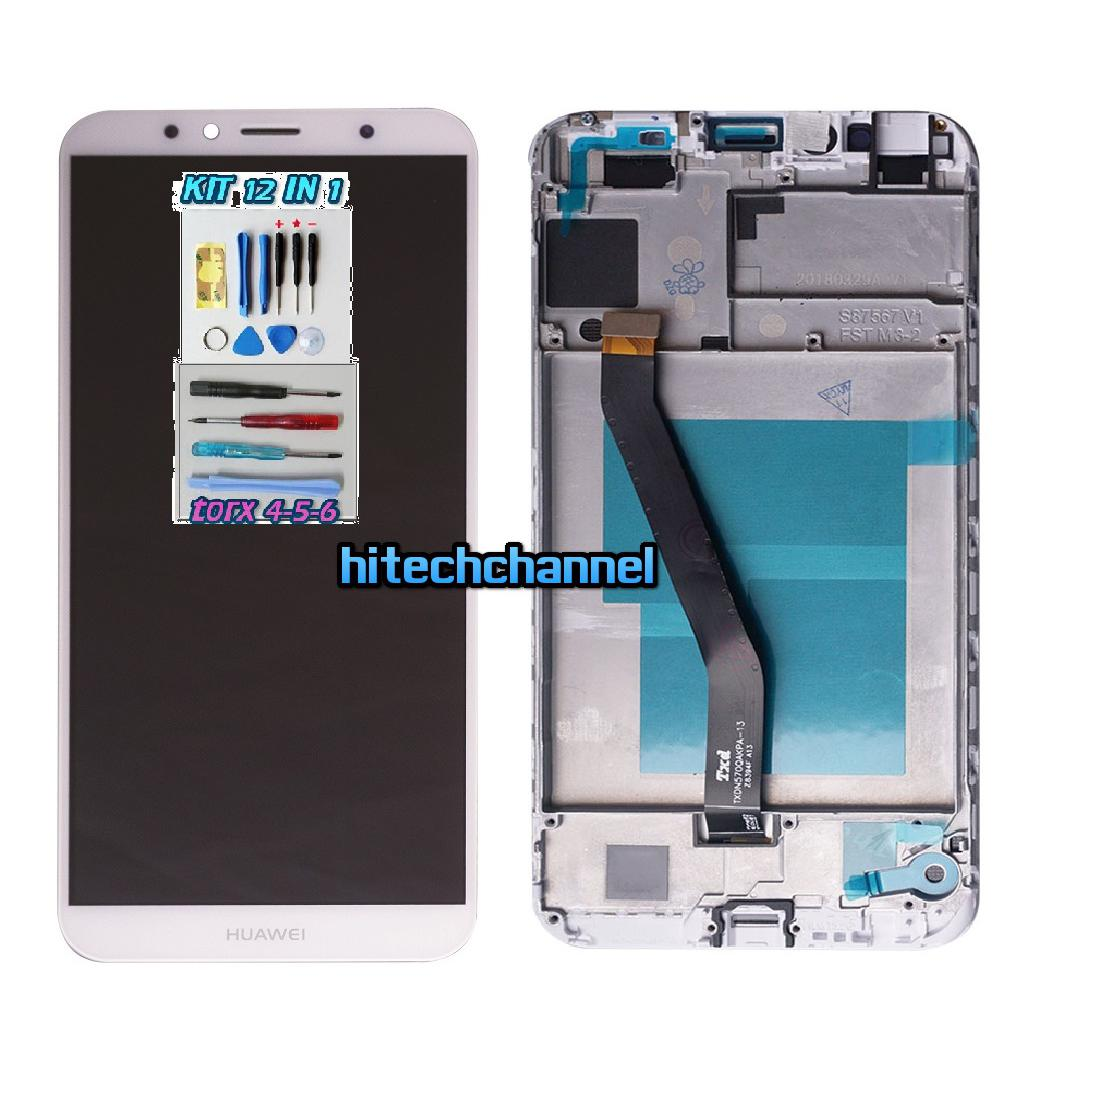 Touch screen display lcd FRAME BIANCO HUAWEI Y6 2018 AUM-L29 E HONOR 7A +colla B7000 kit 9 in 1 e biadesivo